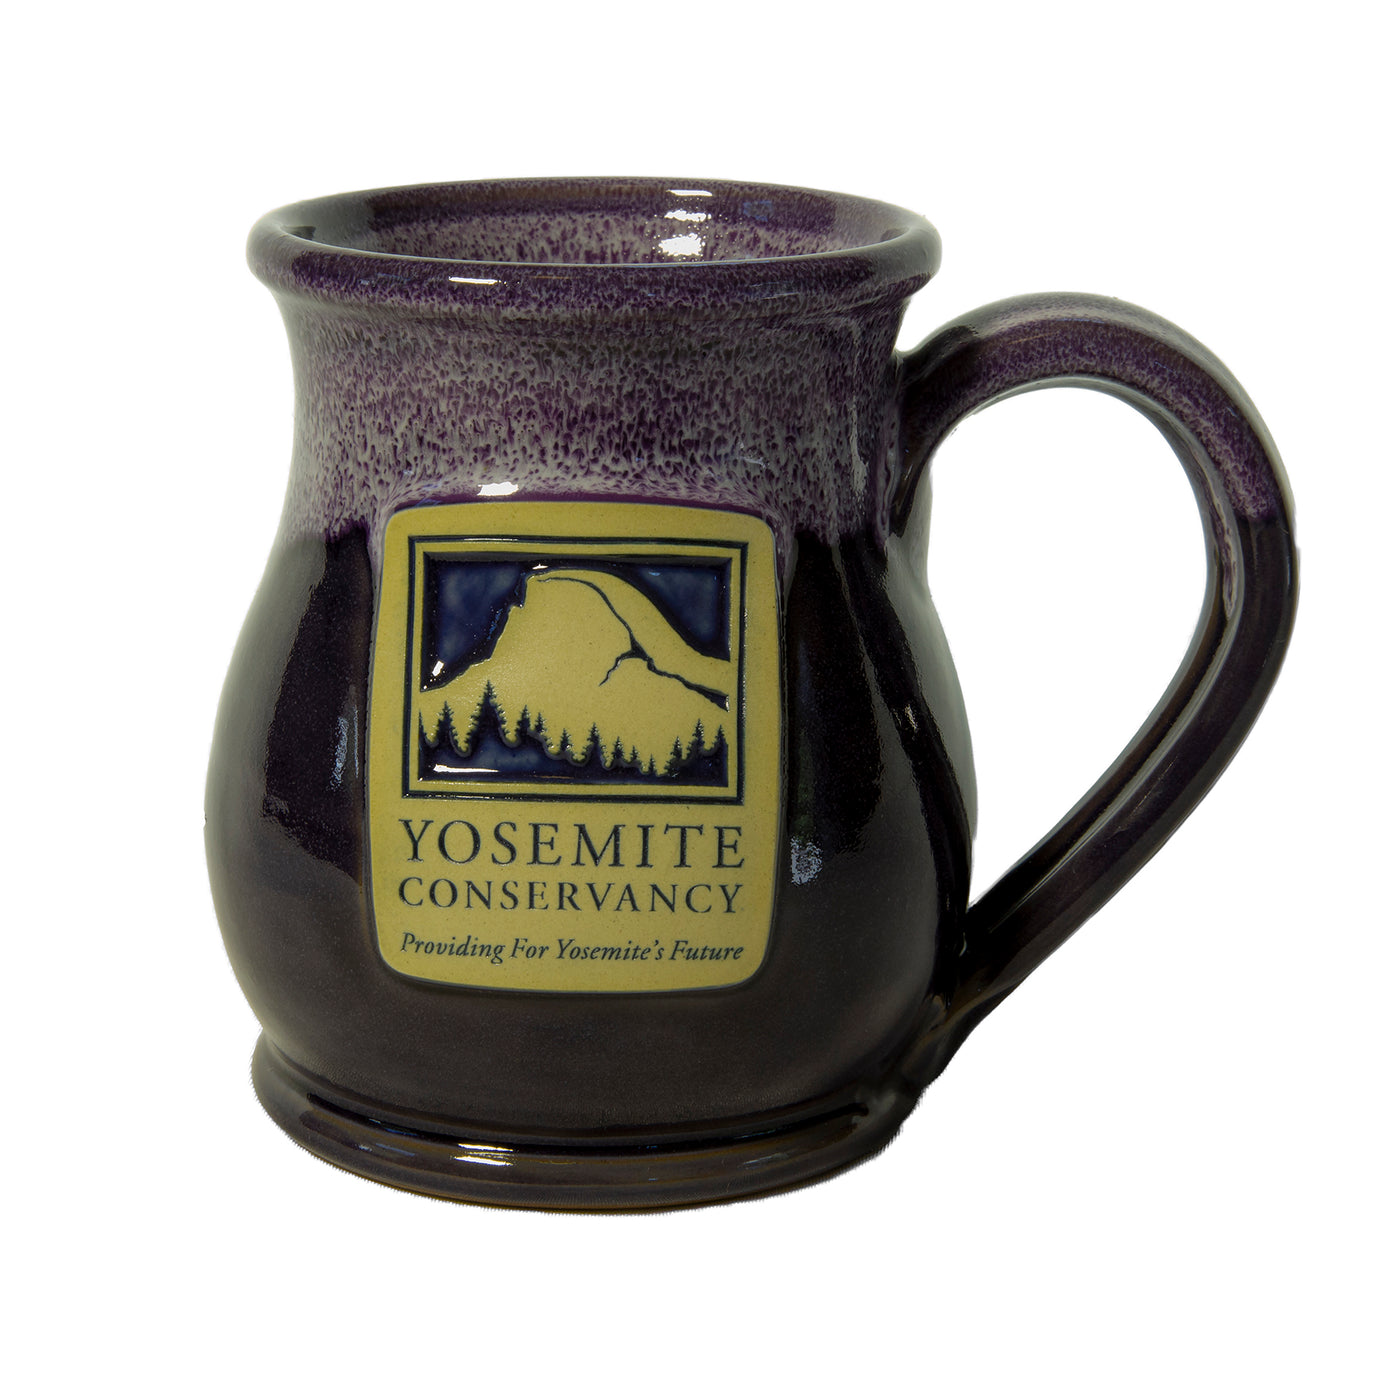 Yosemite Conservancy Mug